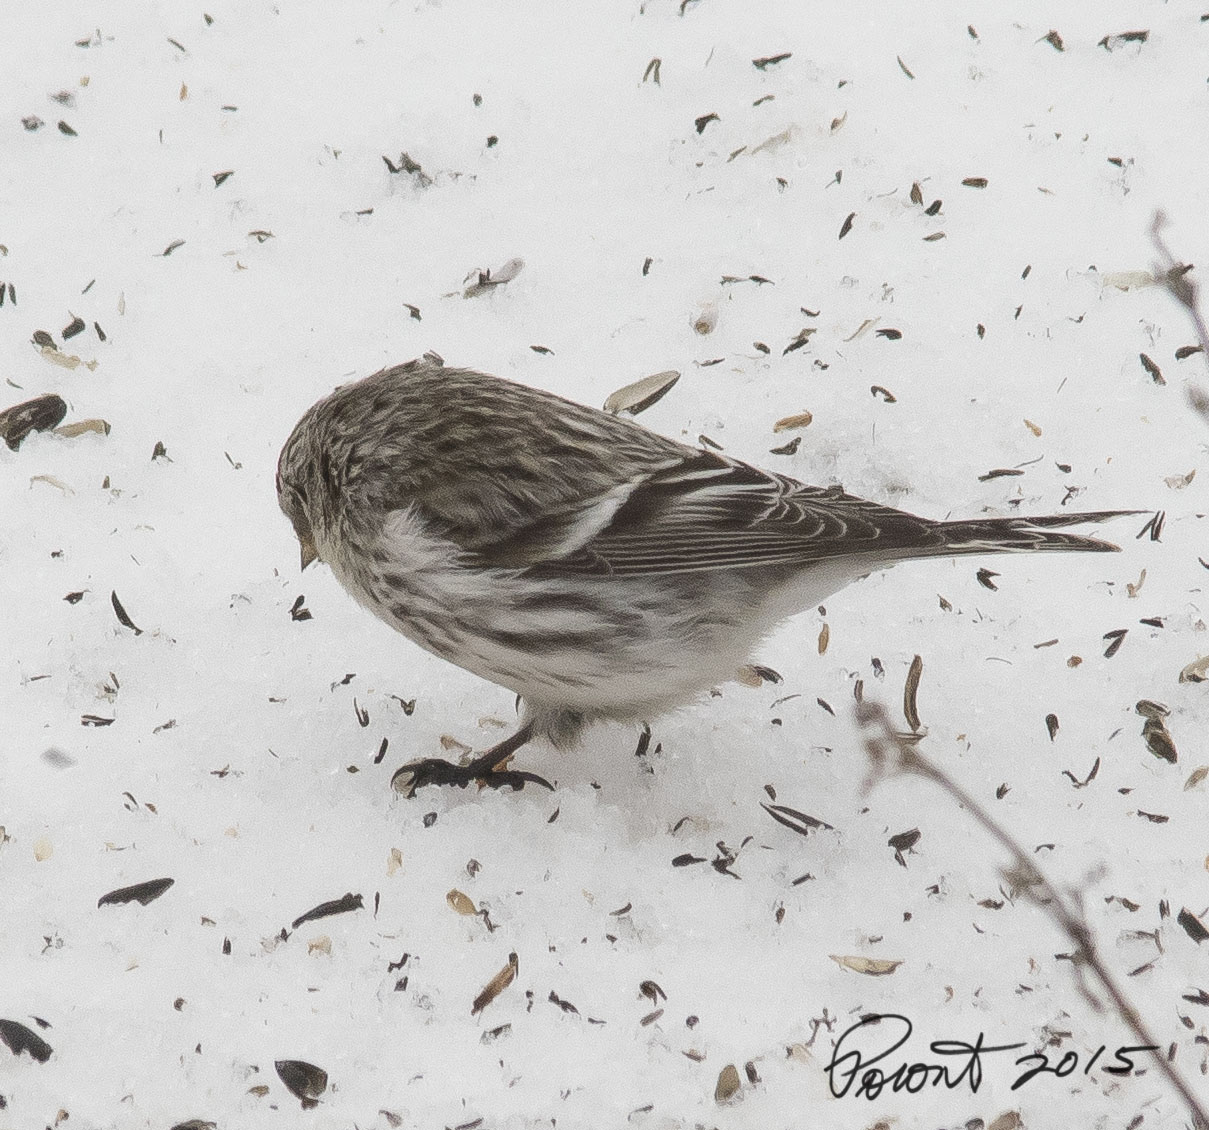 Possible Hoary Redpoll